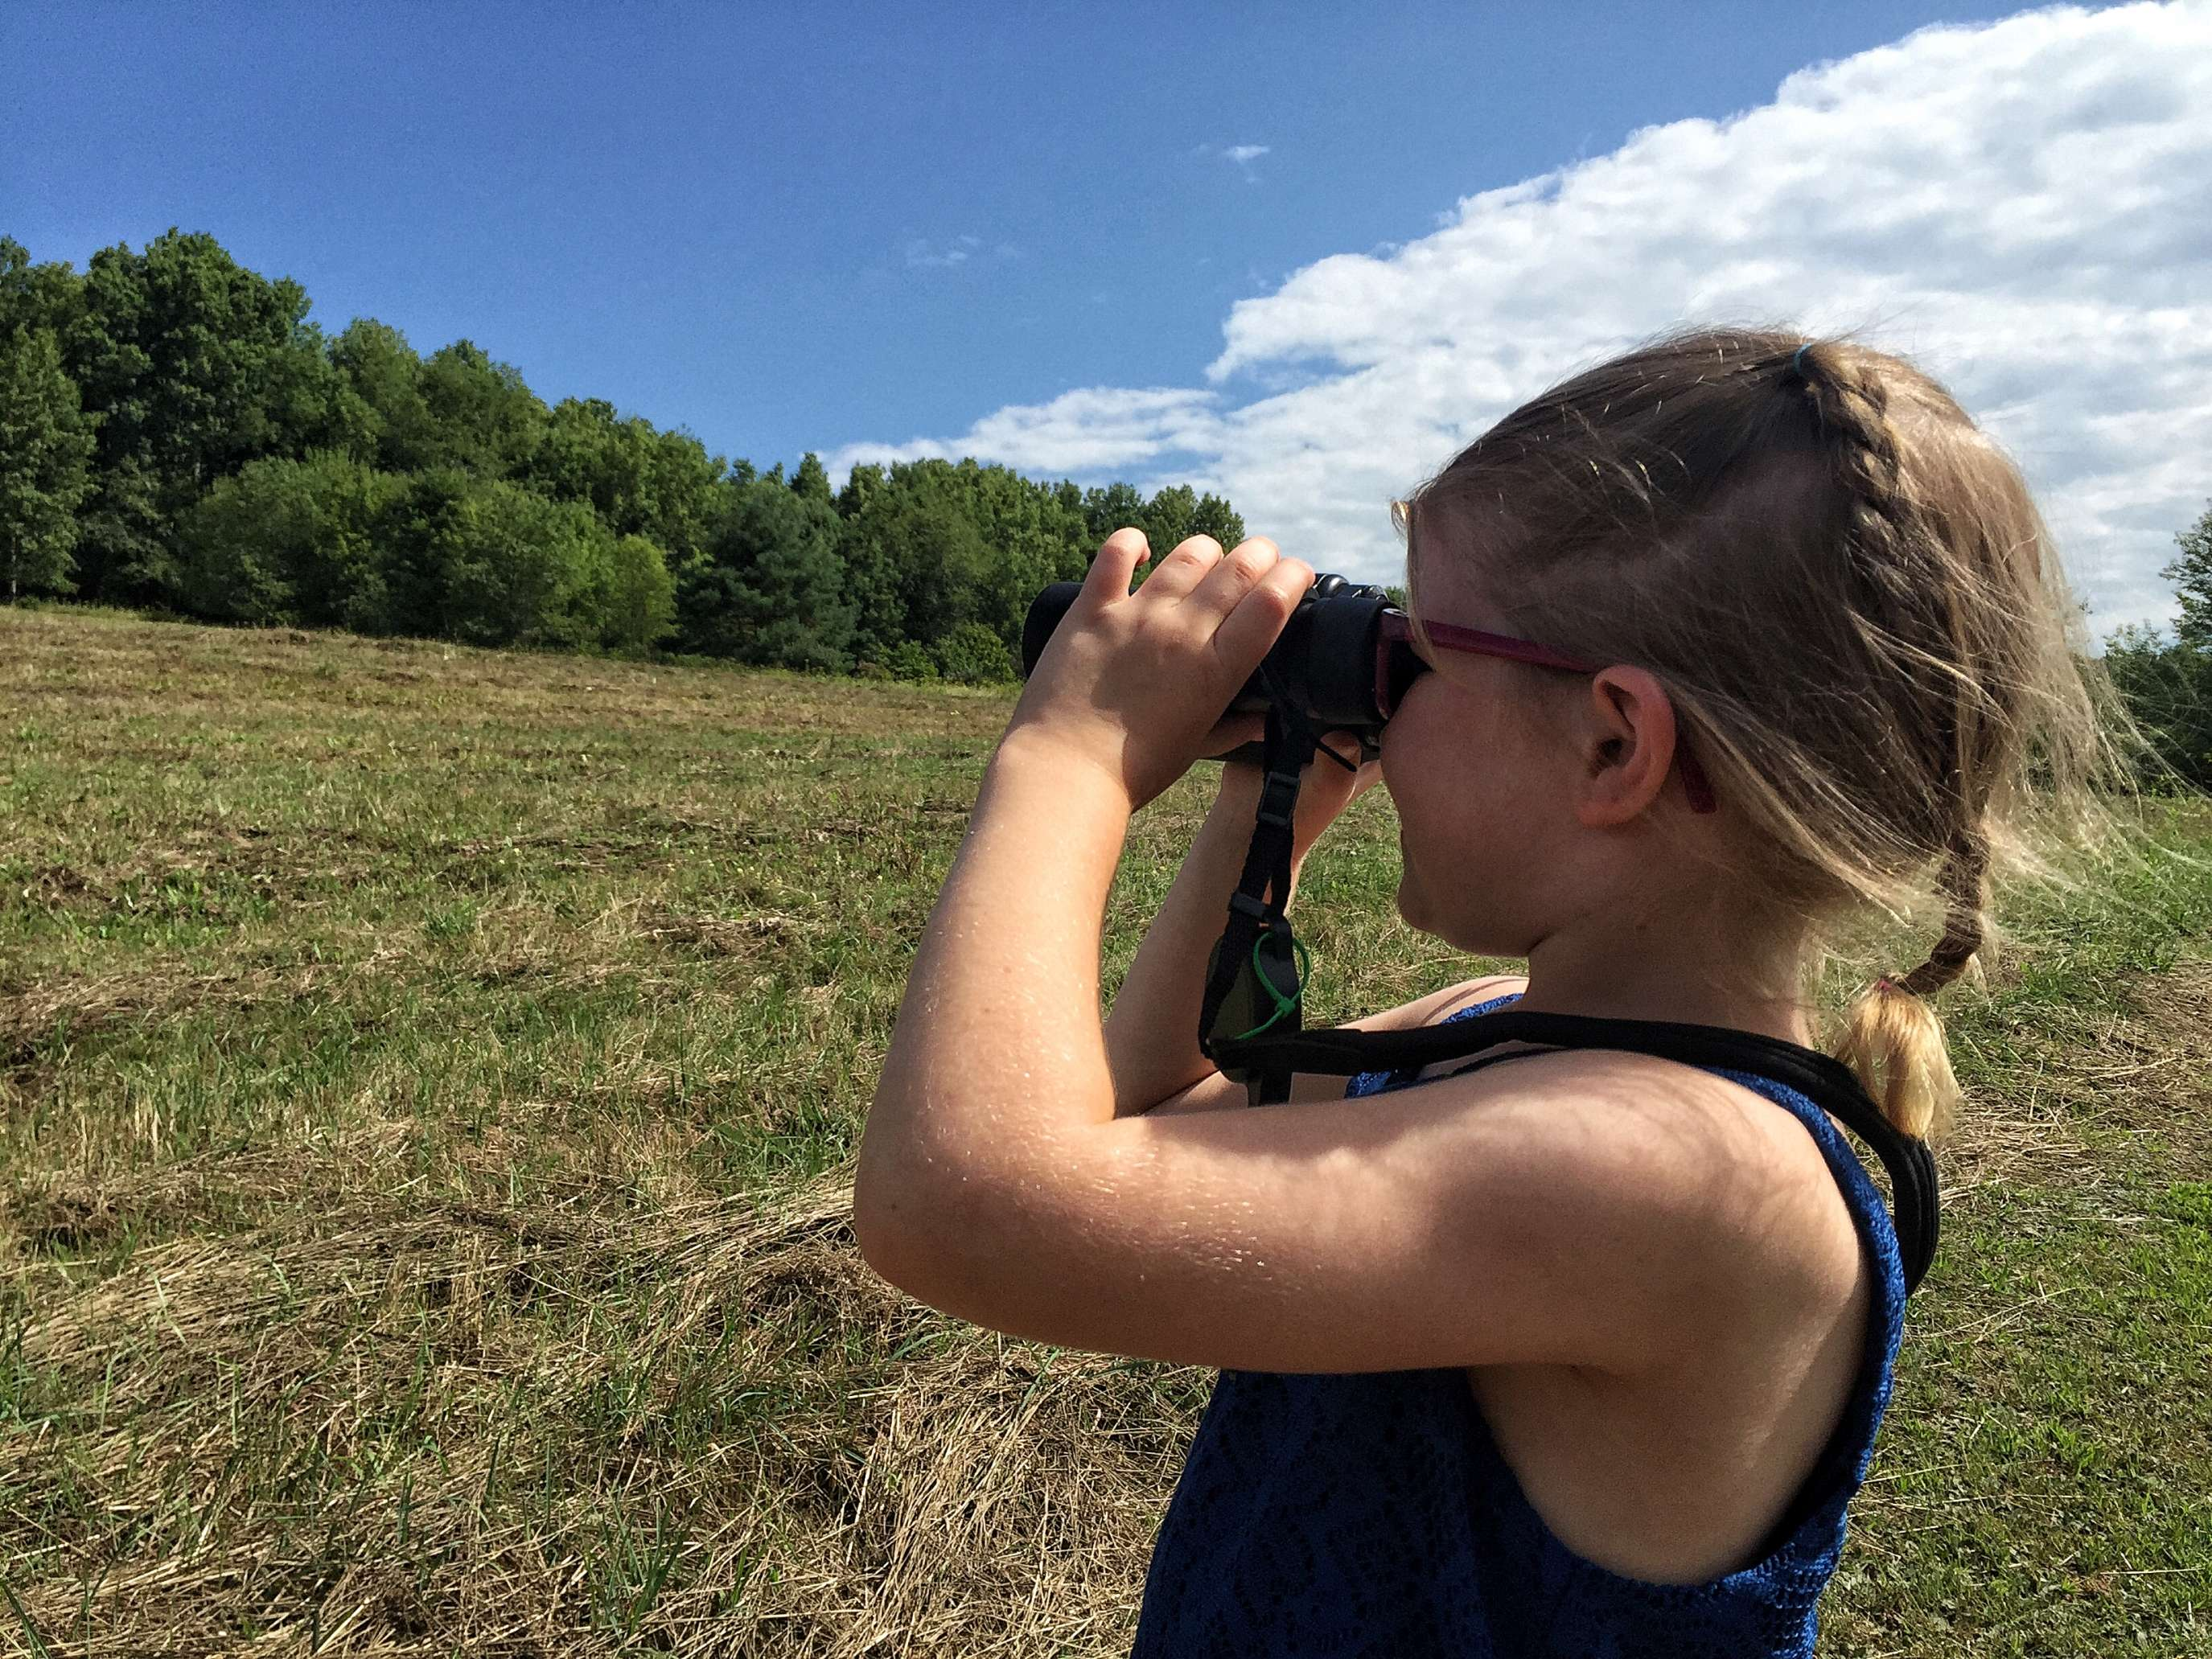 Opticron Savanna Binocular Review